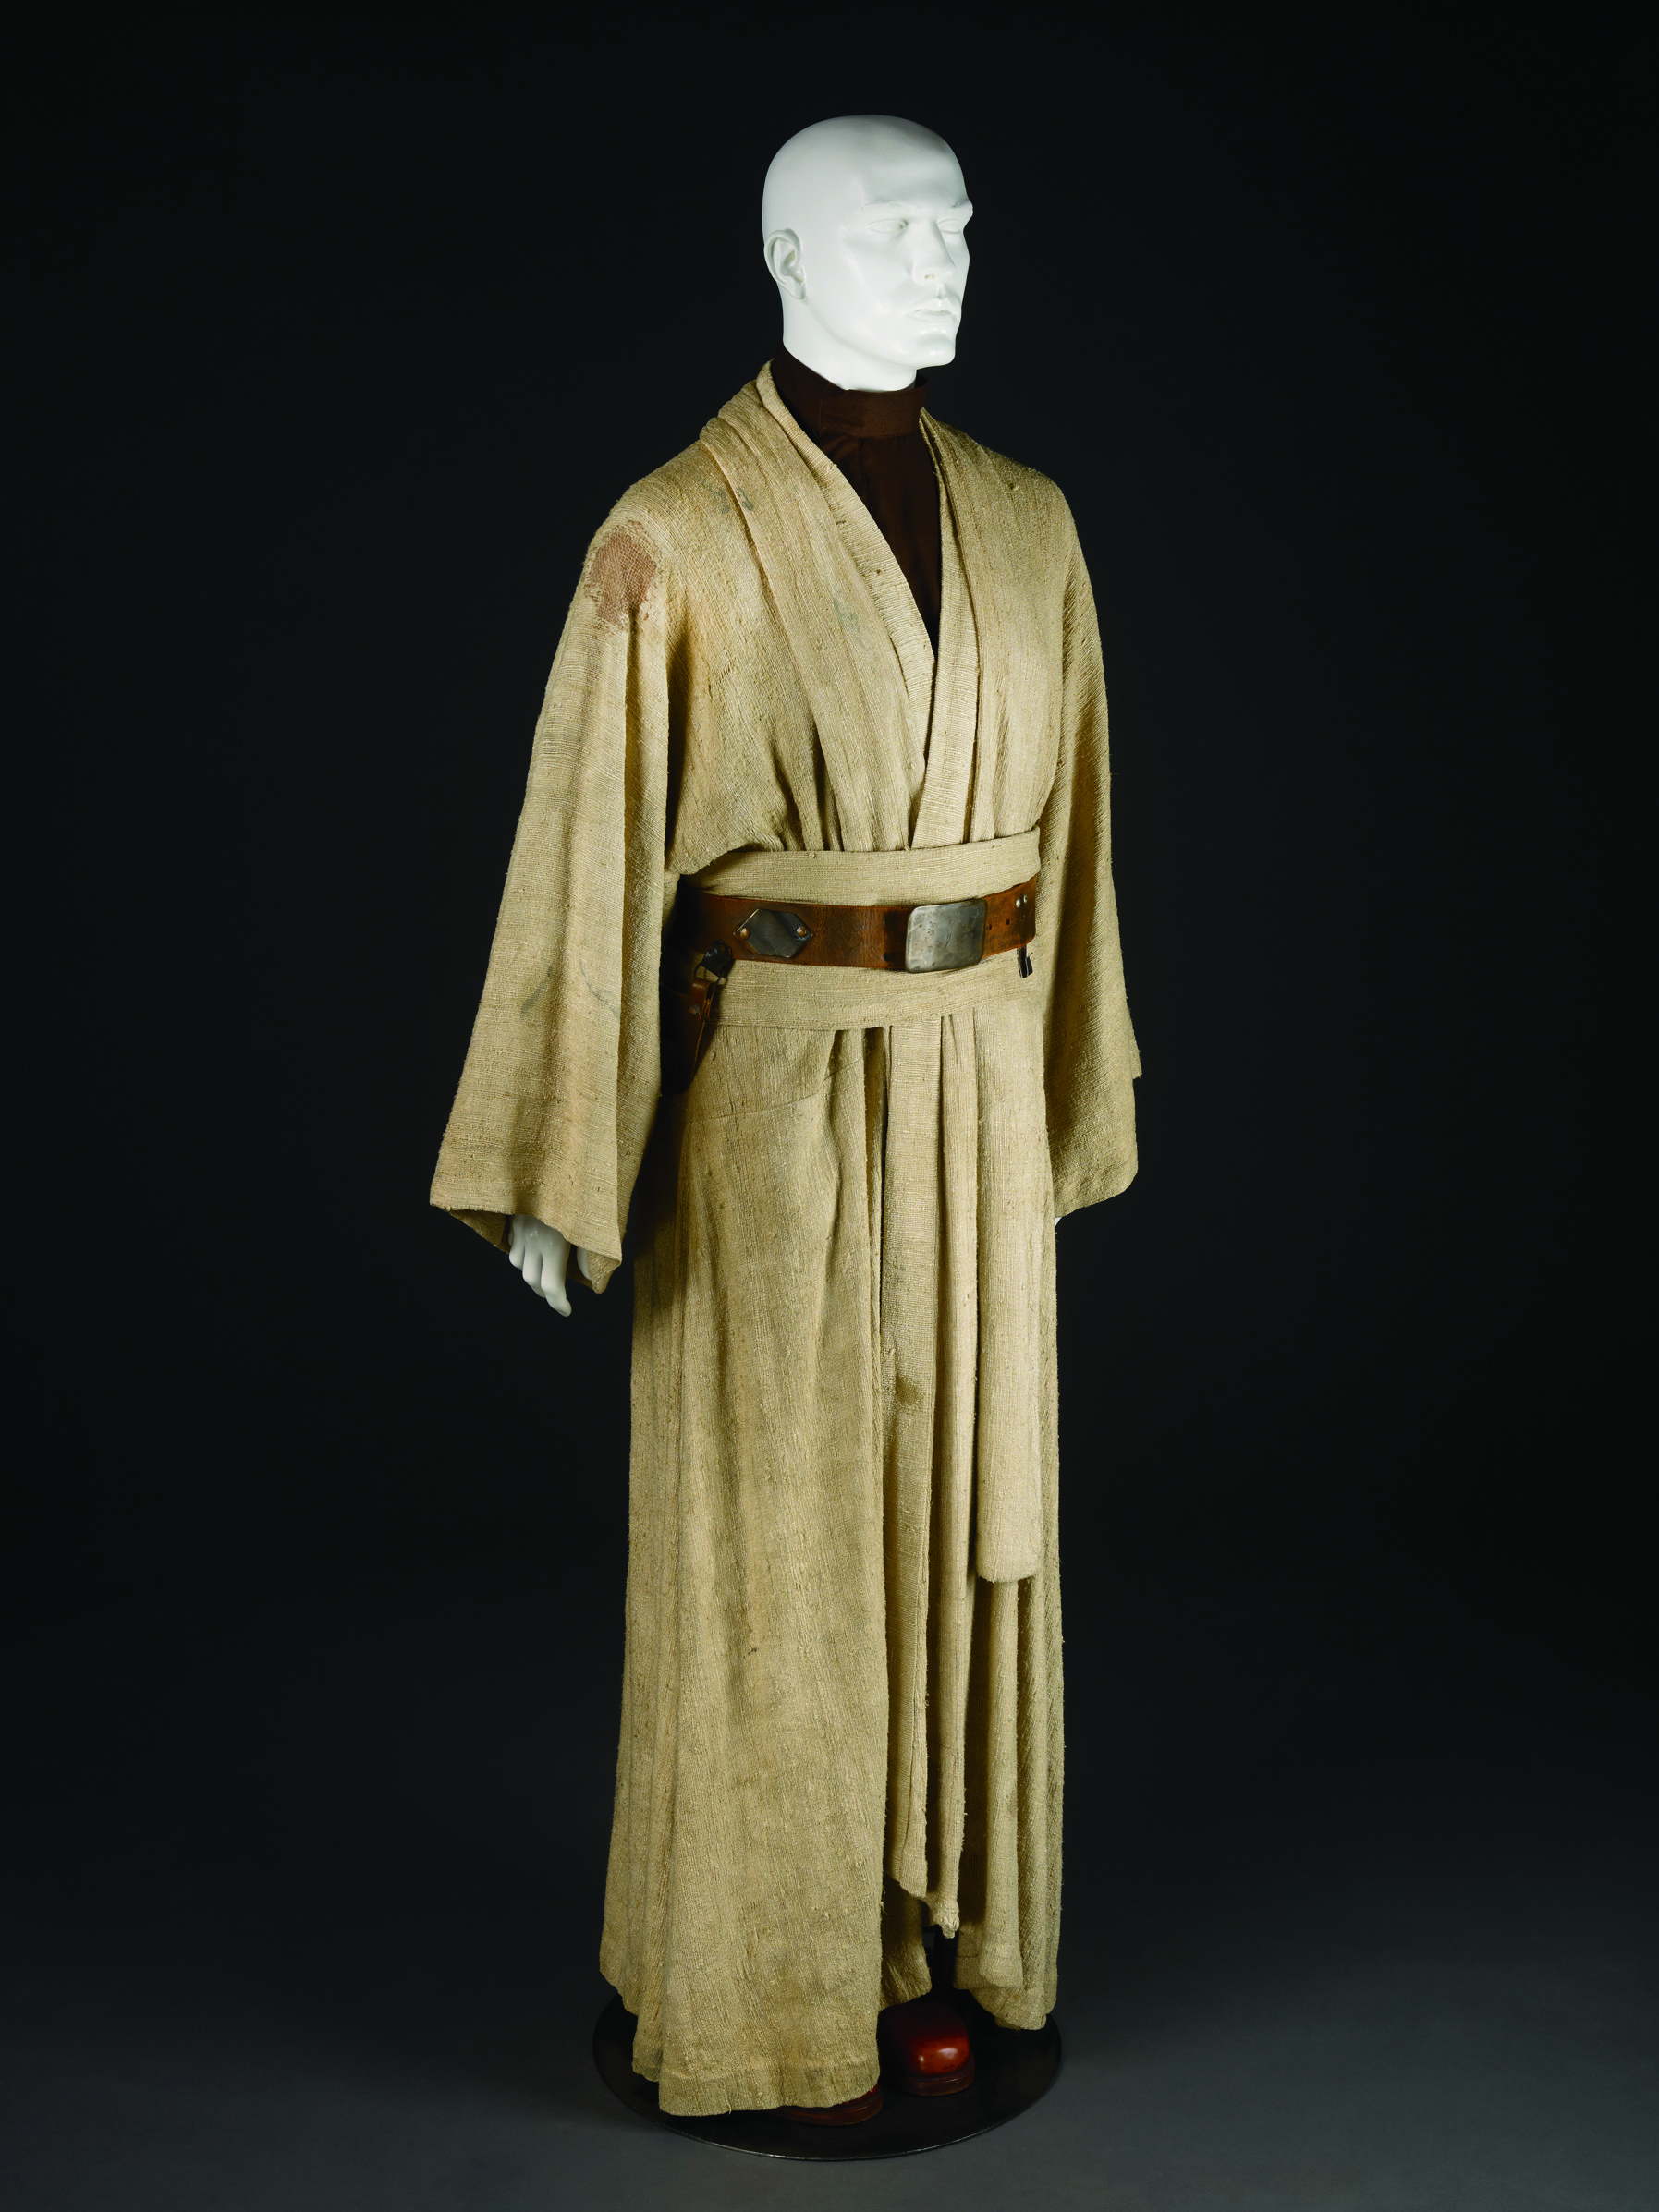 Costume for Obi-Wan Kenobi, played by Alec Guinness in the 1977 film Star Wars: Episode IV - A New Hope